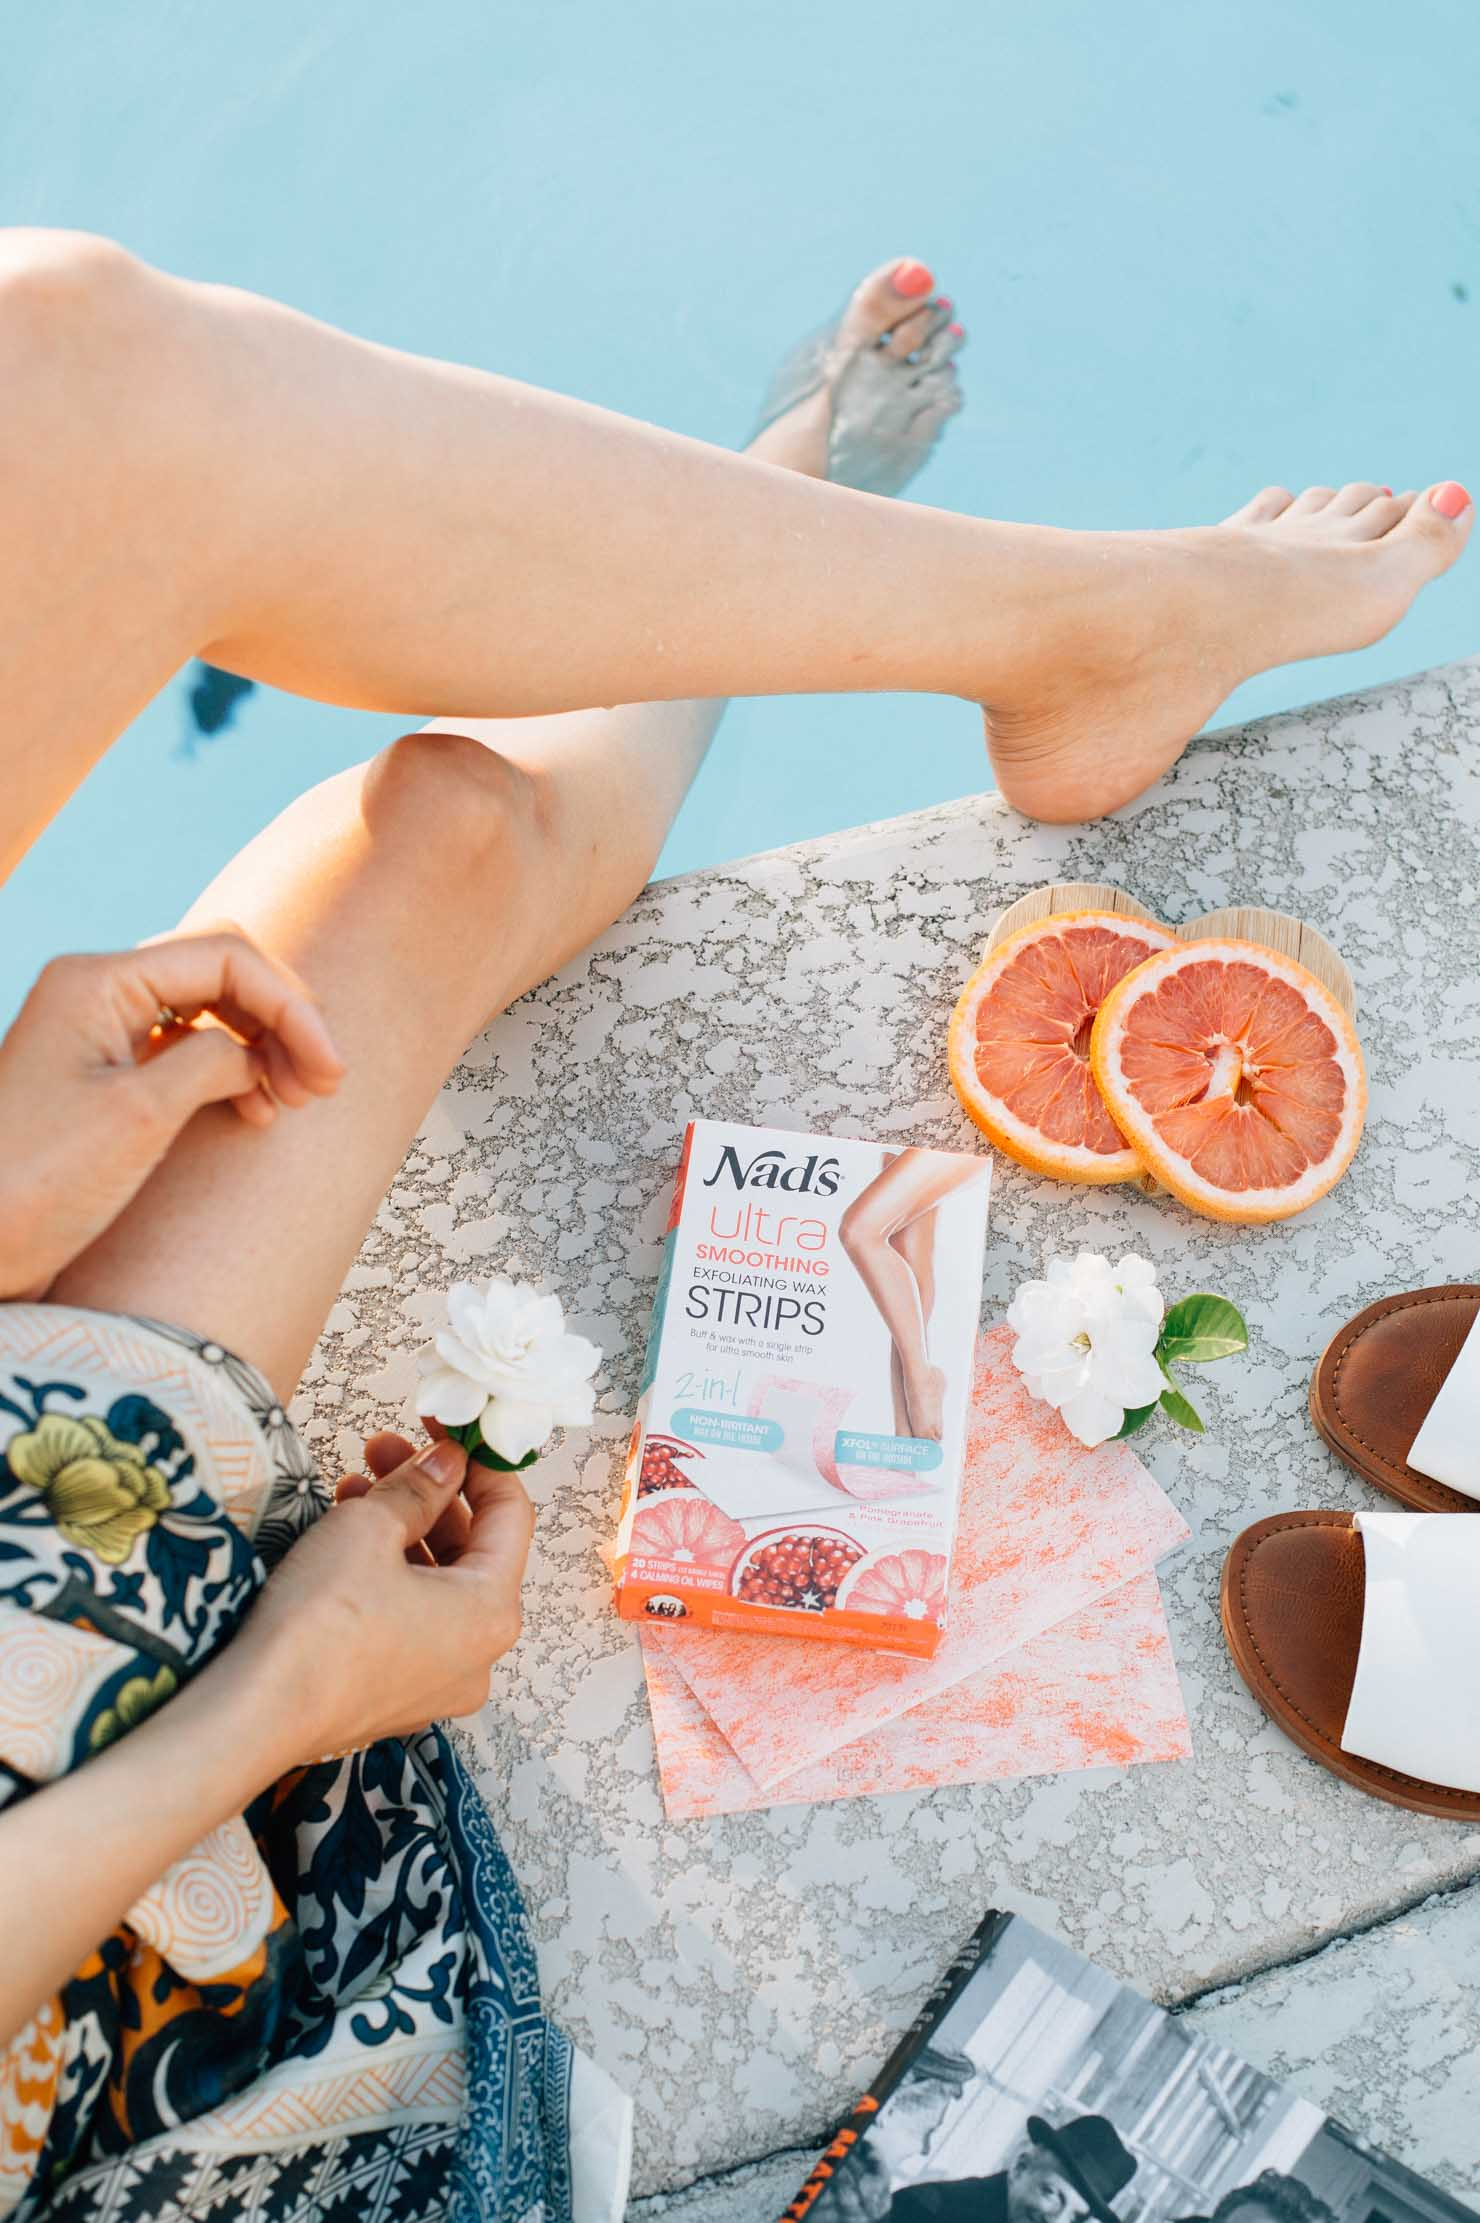 Smooth skin with Nad's Exfoliating Wax Strips | Beauty Blogger Lilly Beltran